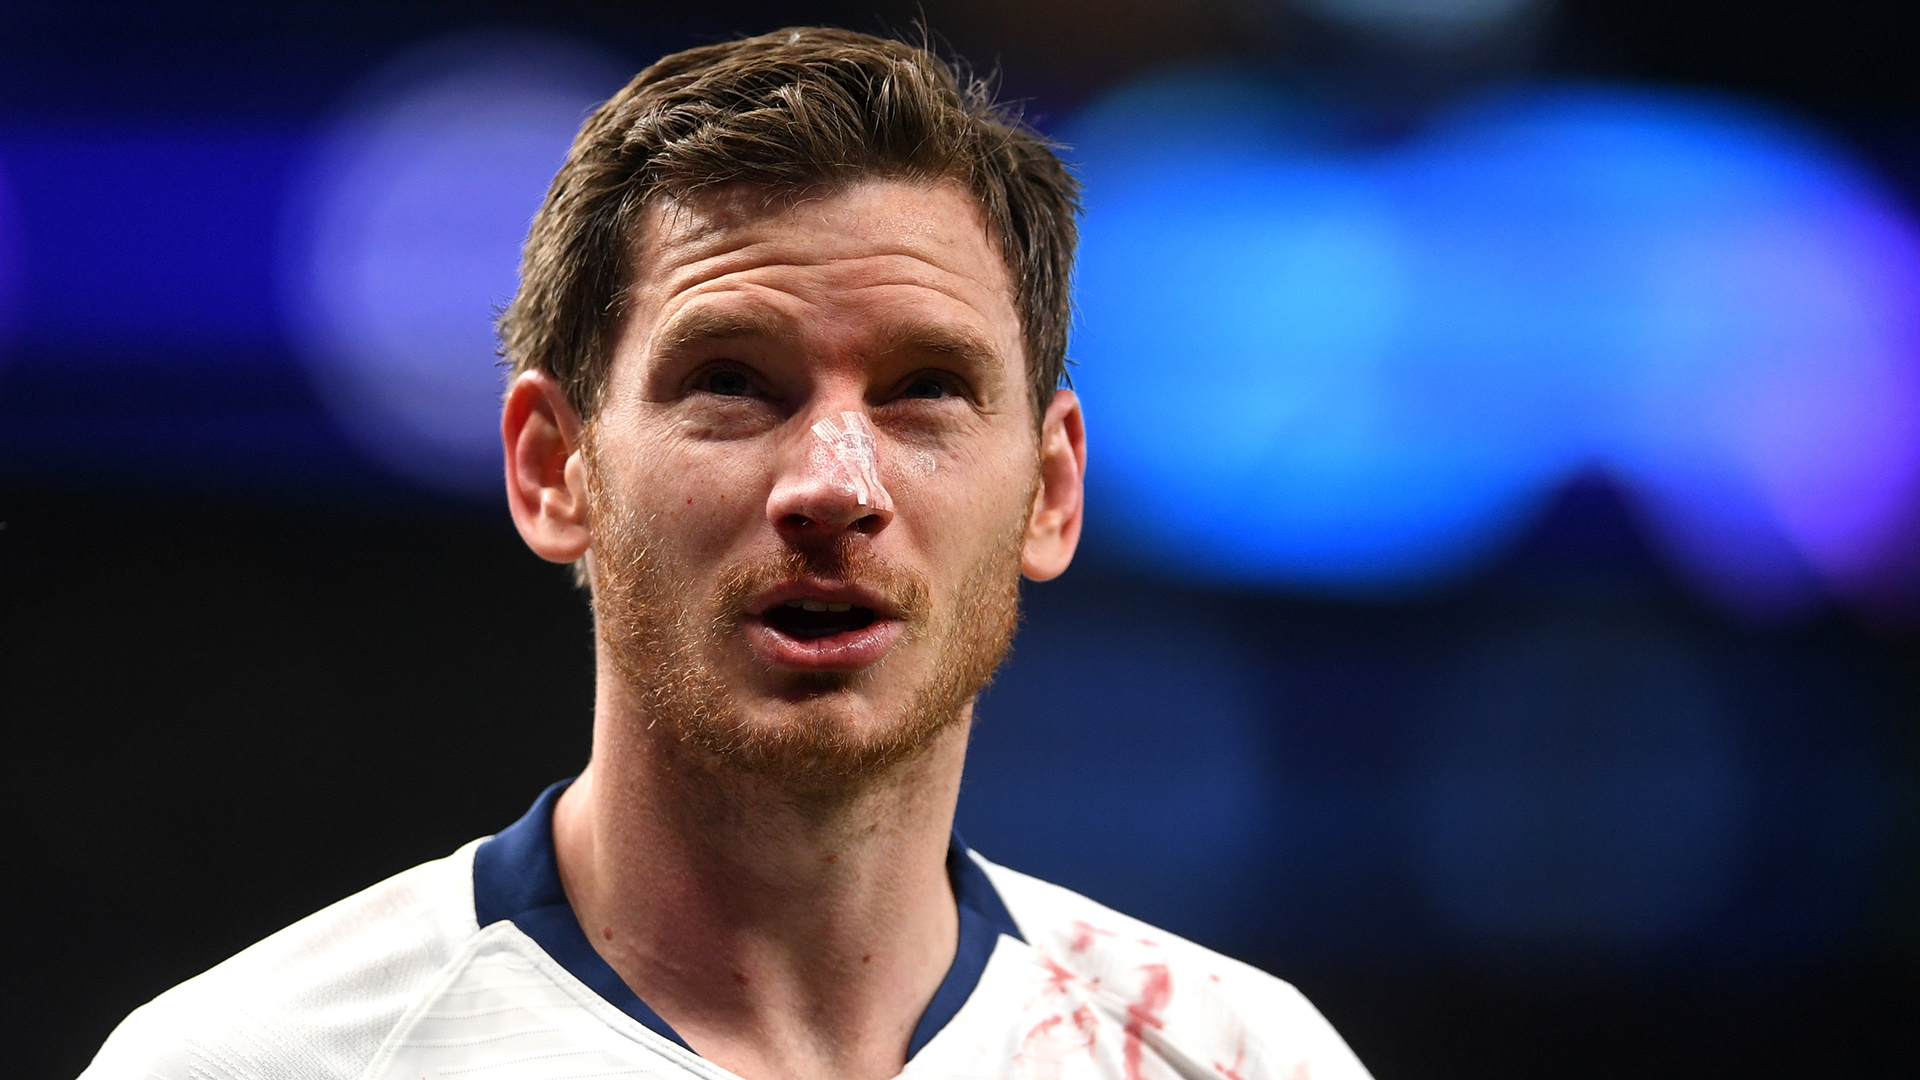 Vertonghen commits to Tottenham, but not a new contract